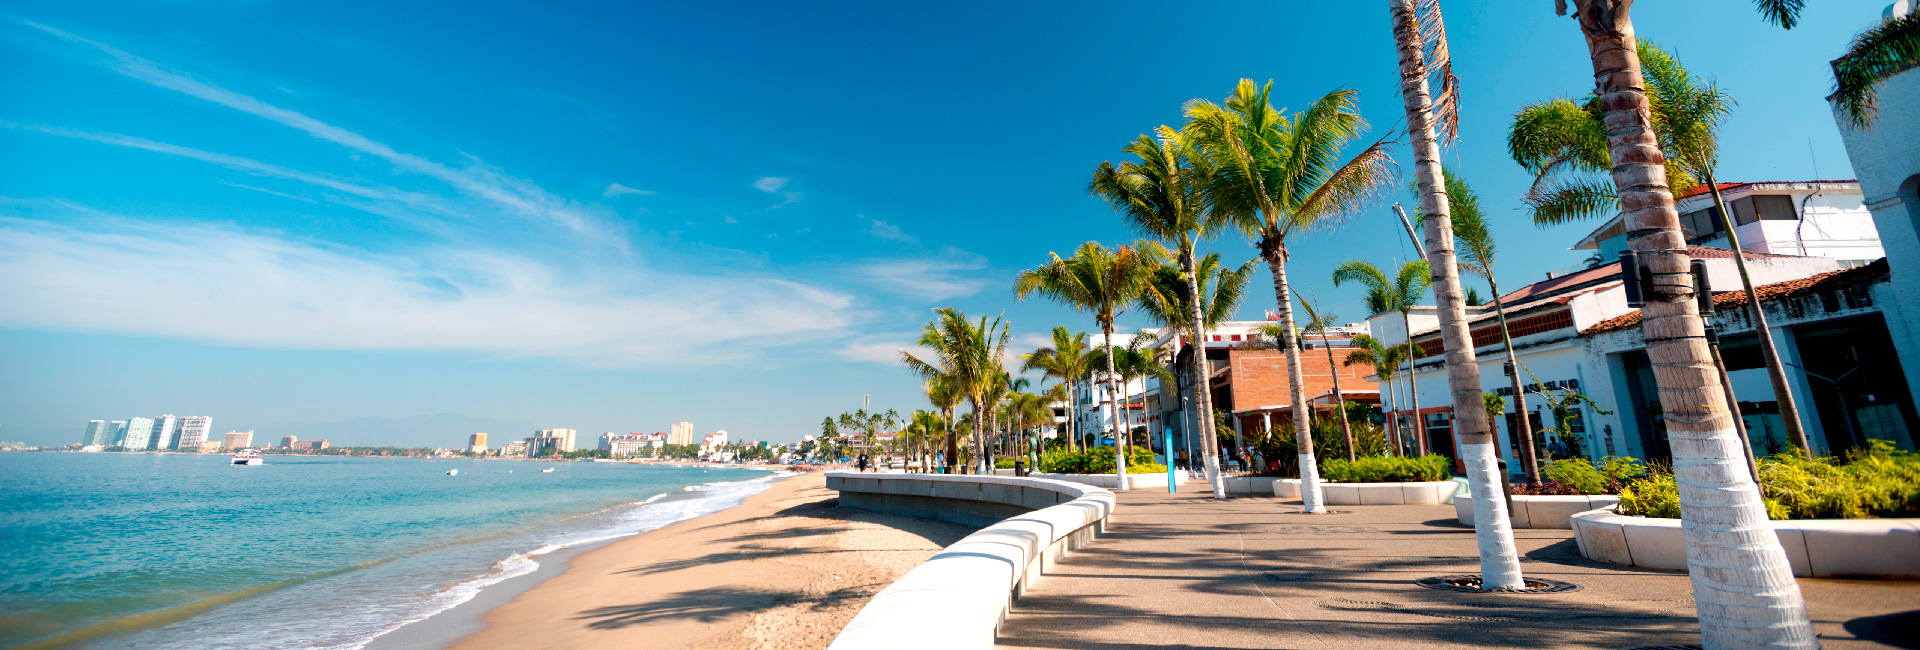 A guide to the puerto vallarta restaurants in the romantic zone1920x650